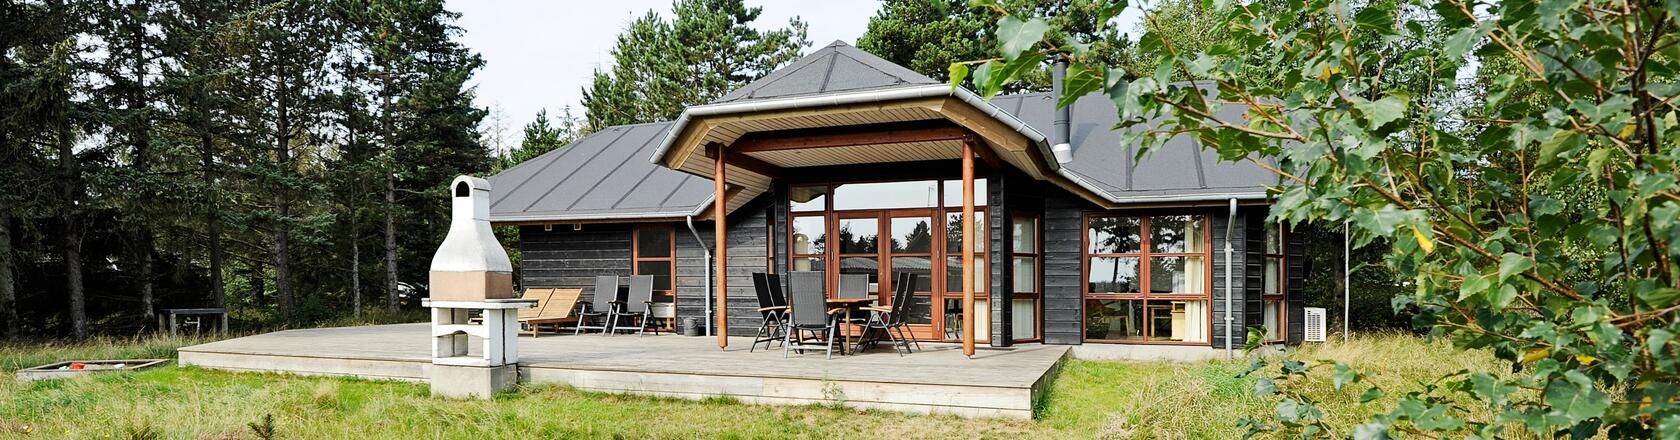 Rømø/Vesterhede in Denmark - Rent a holiday home  with DanCenter